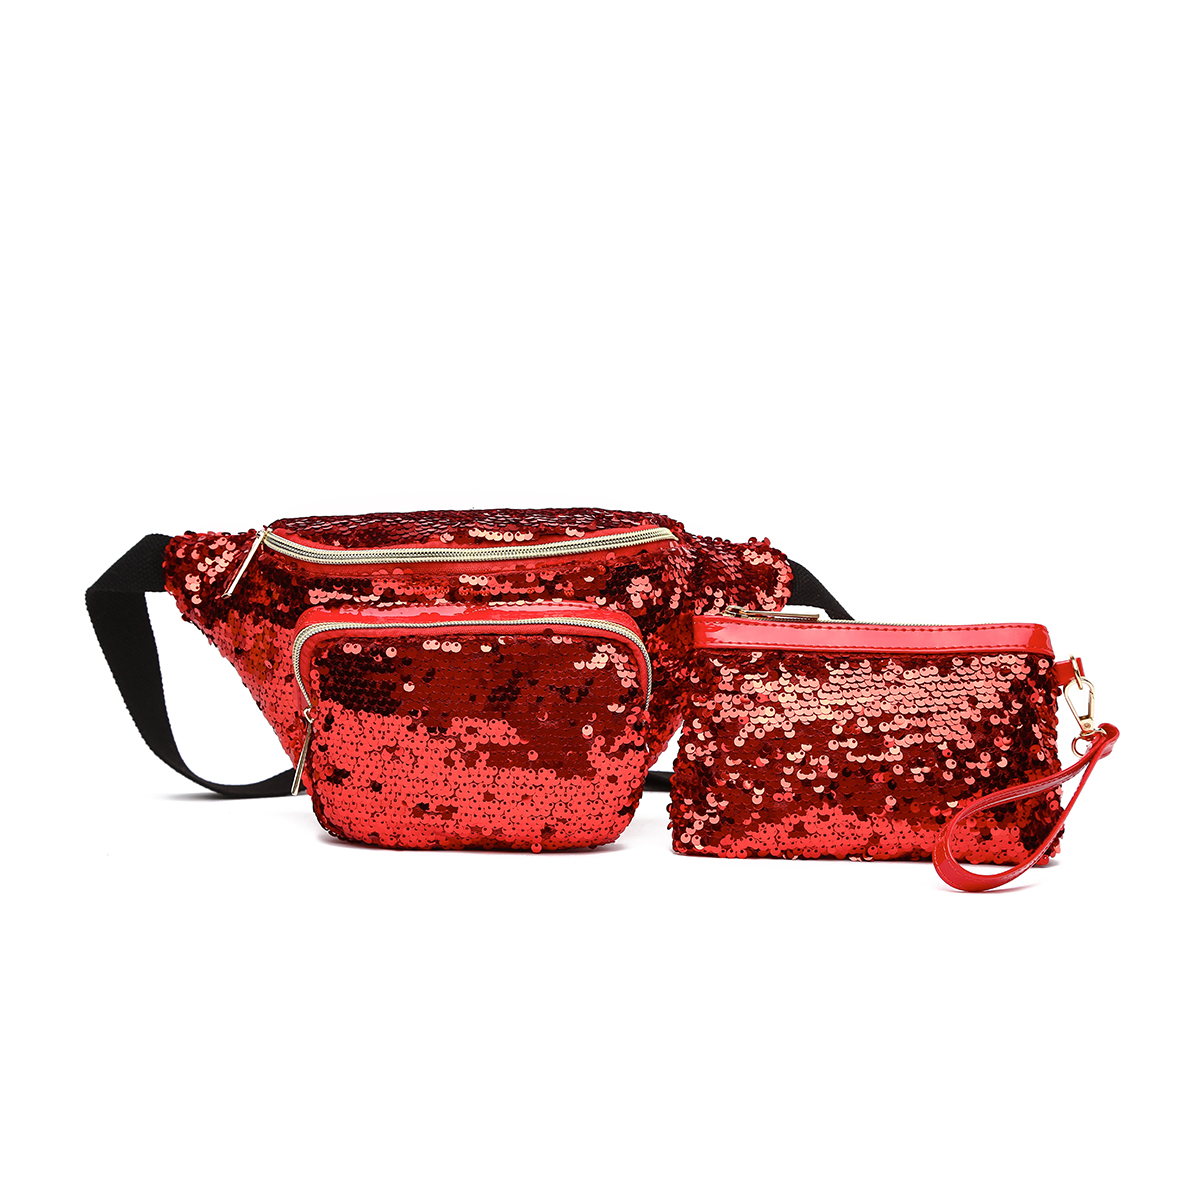 Glitter Bum Waist Fanny Pack with Money Bag Red